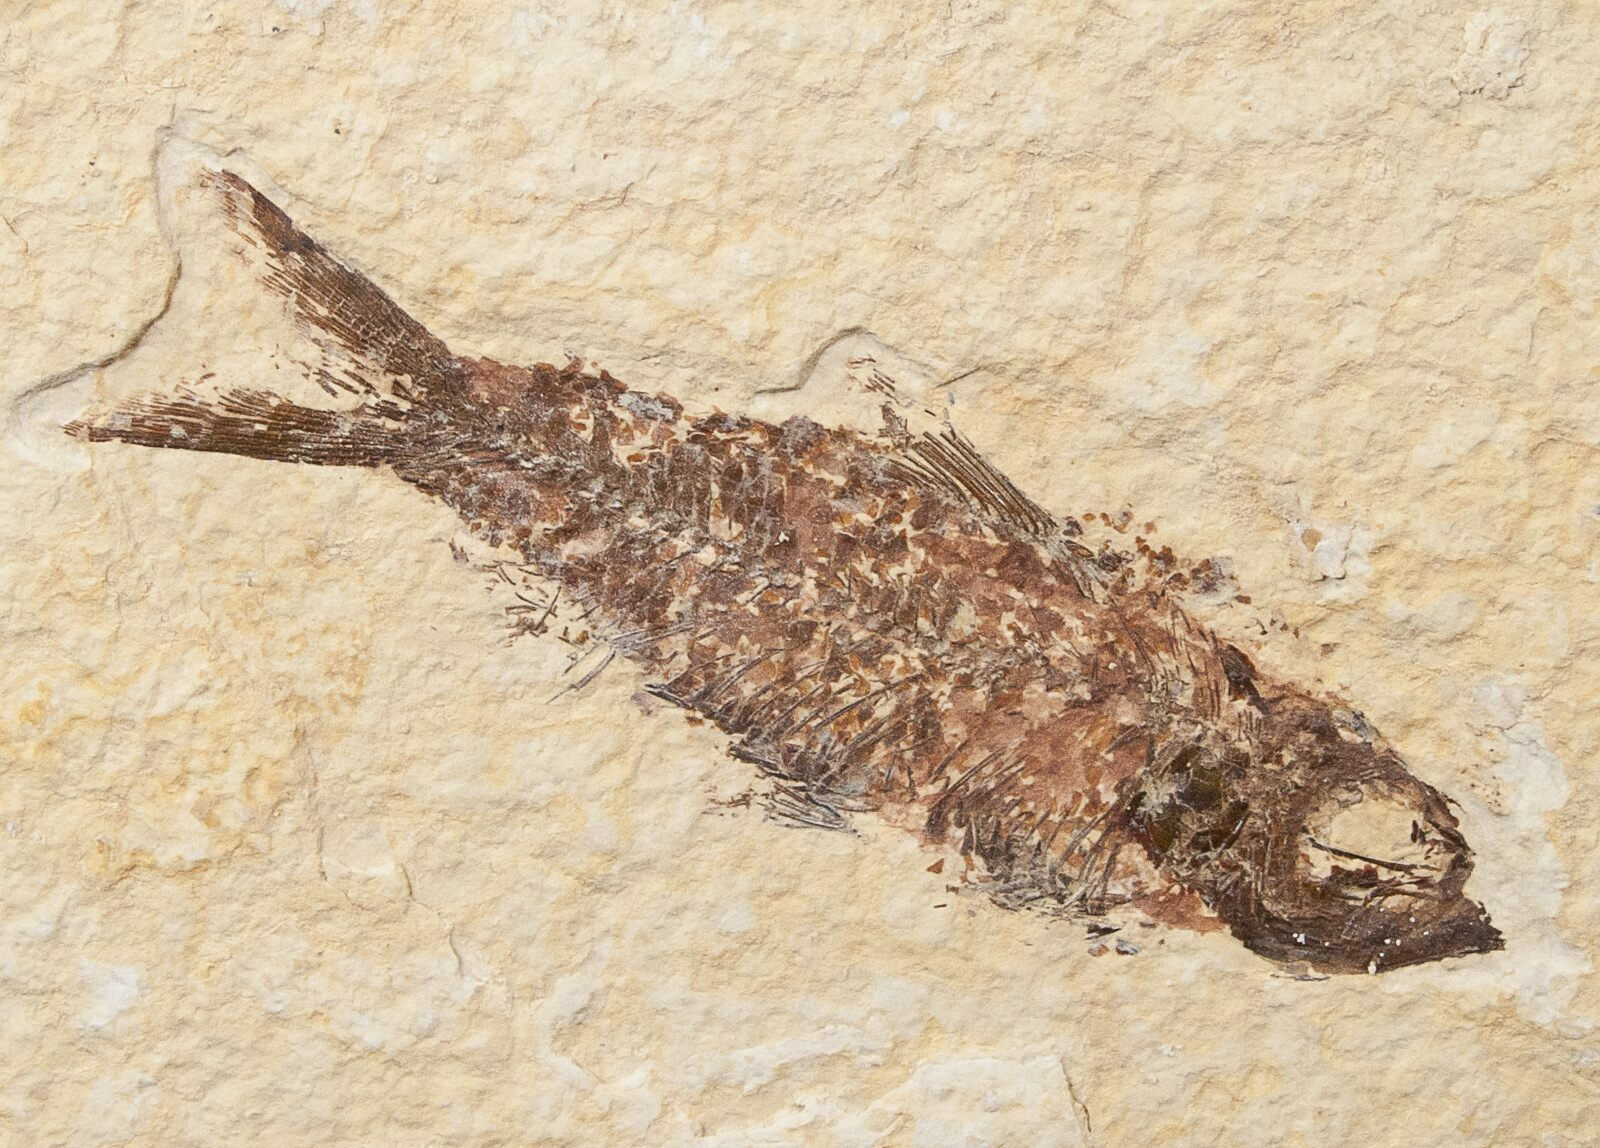 Bargain 2 8 knightia fossil fish wyoming for sale for Fish fossils for sale